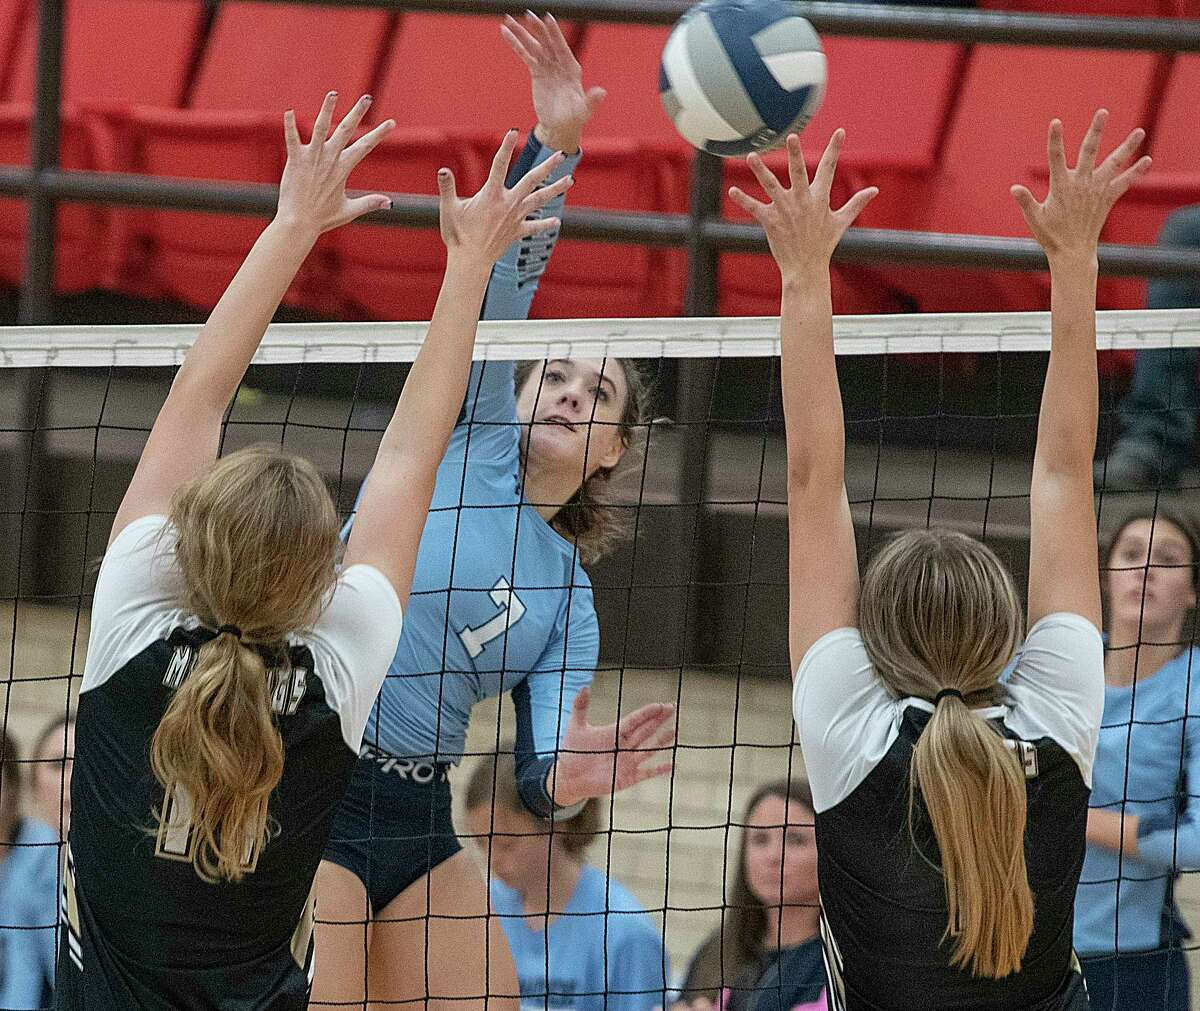 Greenwood's Kirklyn Smith tries to get the ball past Andrews' Tori Woodside and Jamie Blinco-Butler blocks 09/25/2021 at Greenwood High School gym. Tim Fischer/Reporter-Telegram